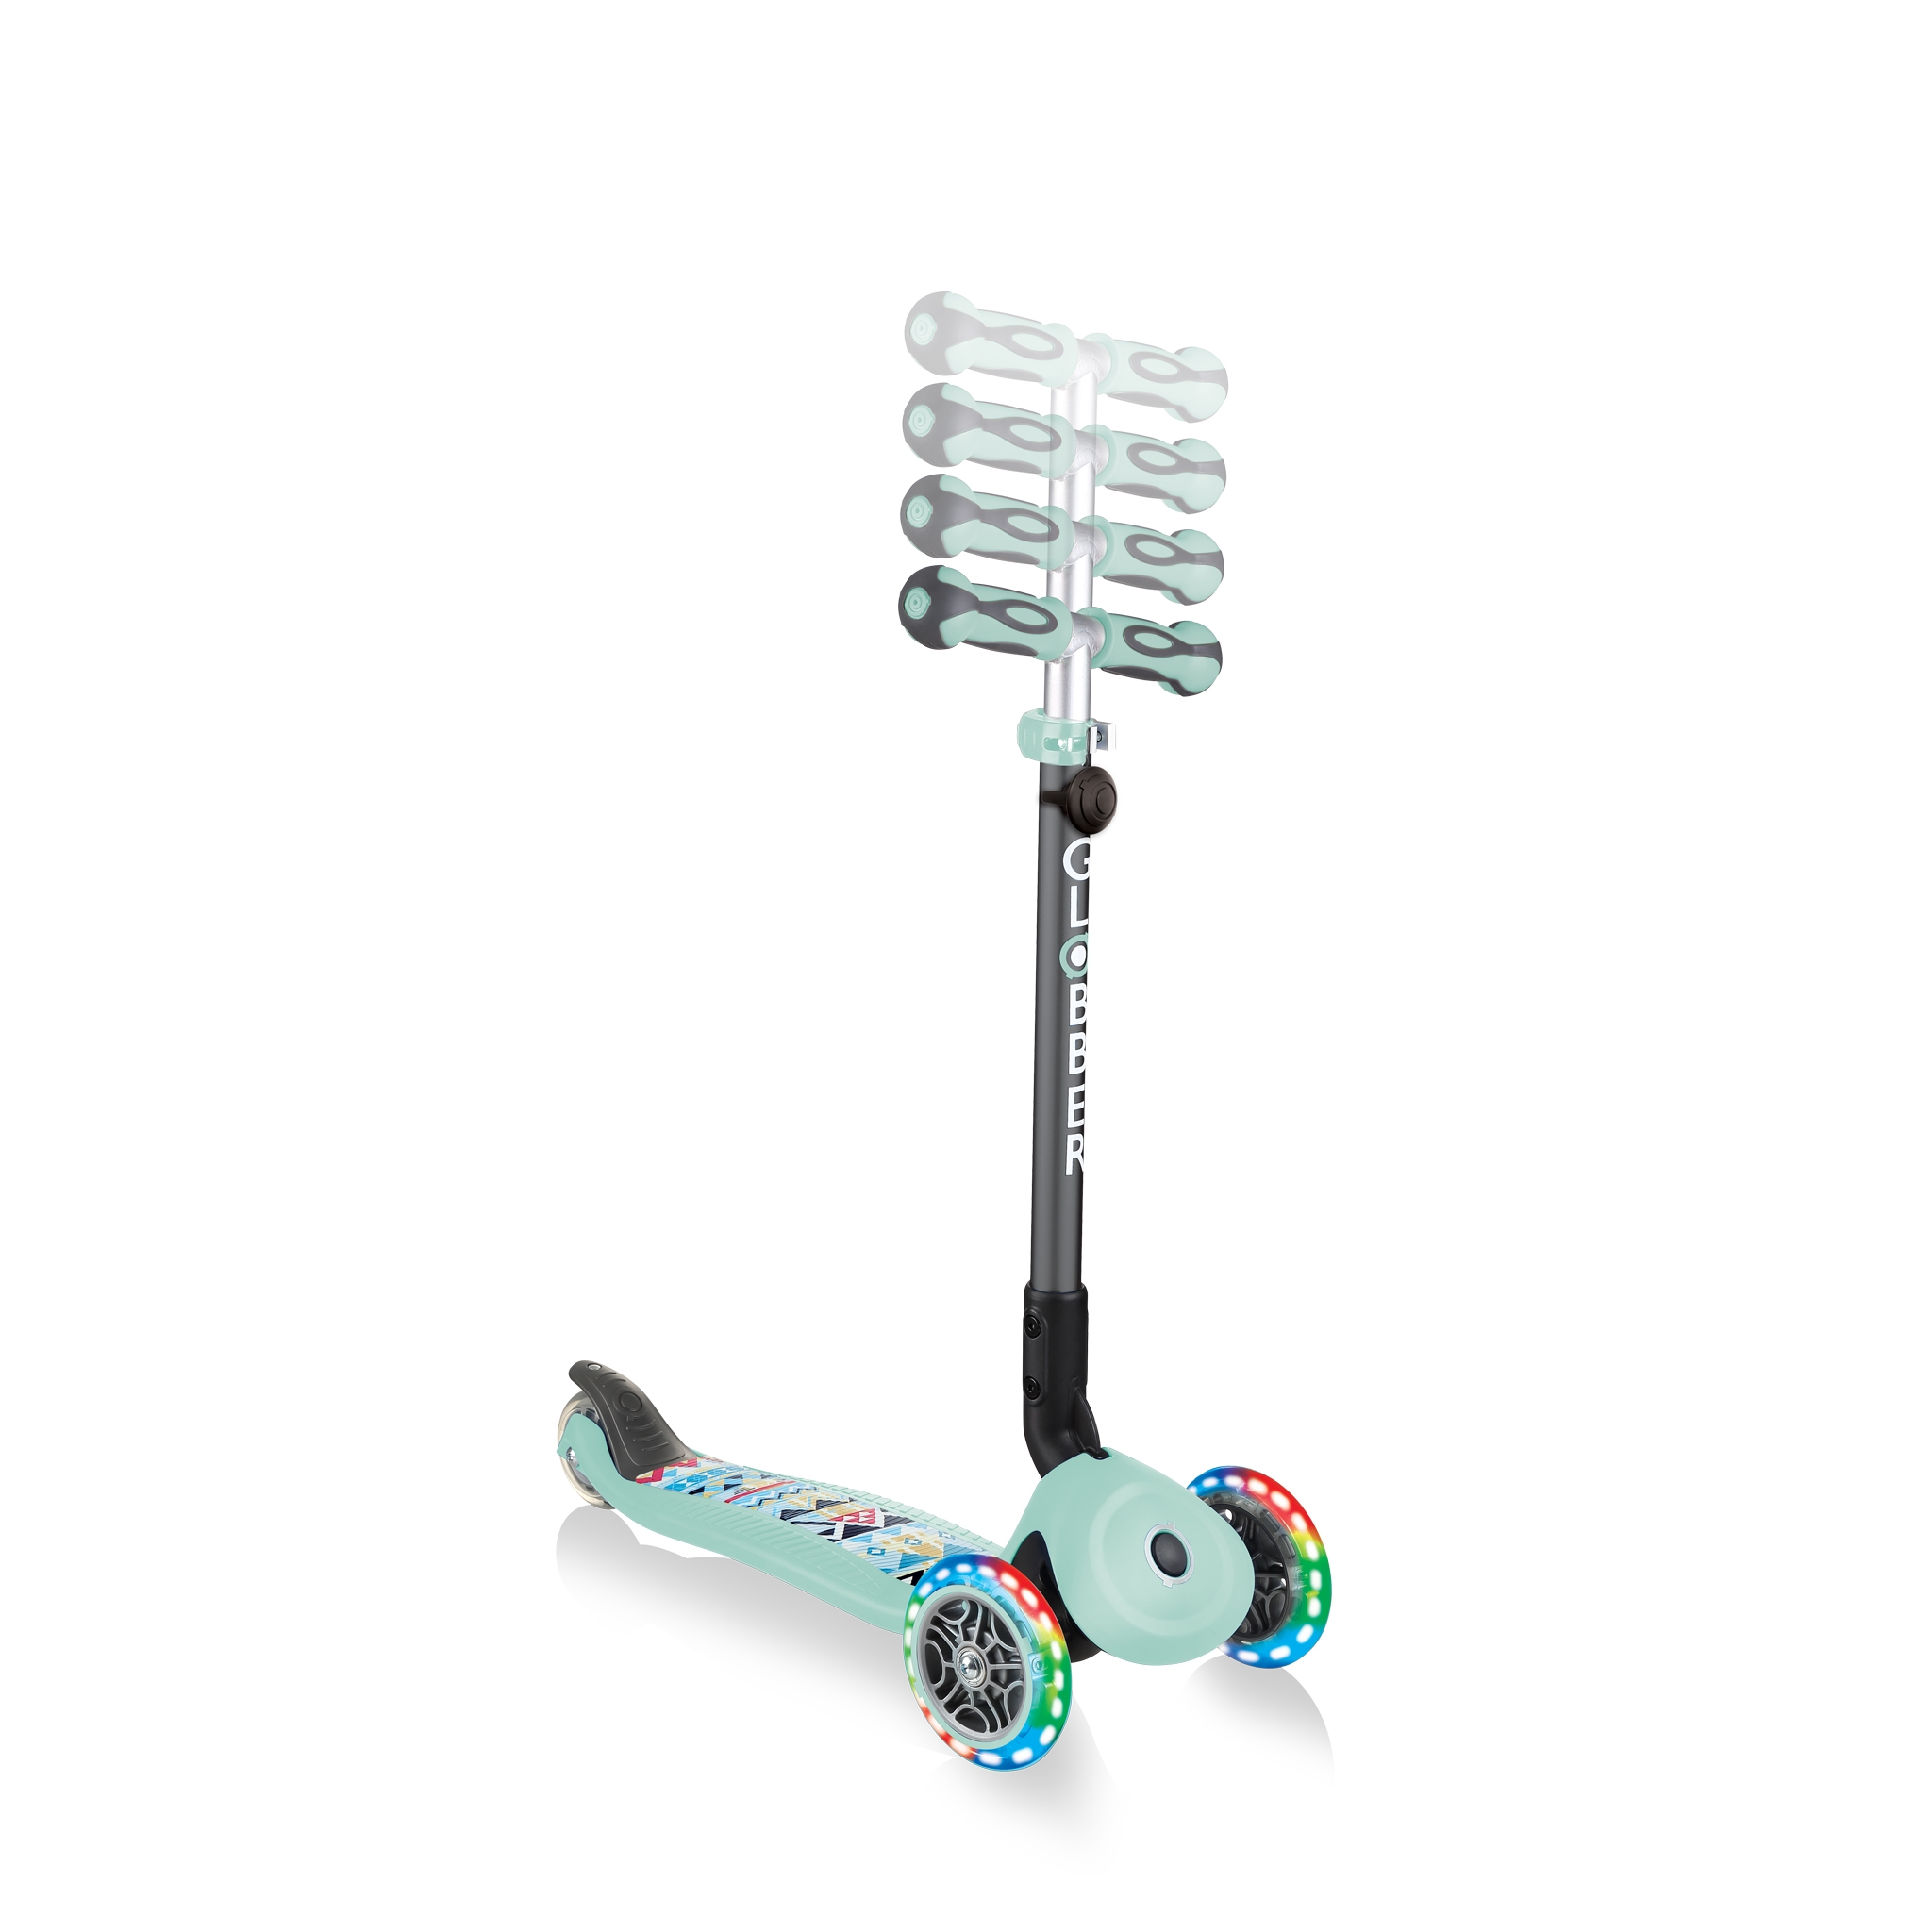 3-wheel-scooter-for-toddlers-with-adjustable-T-bar-Globber-GO-UP-DELUXE-FANTASY-LIGHTS 4